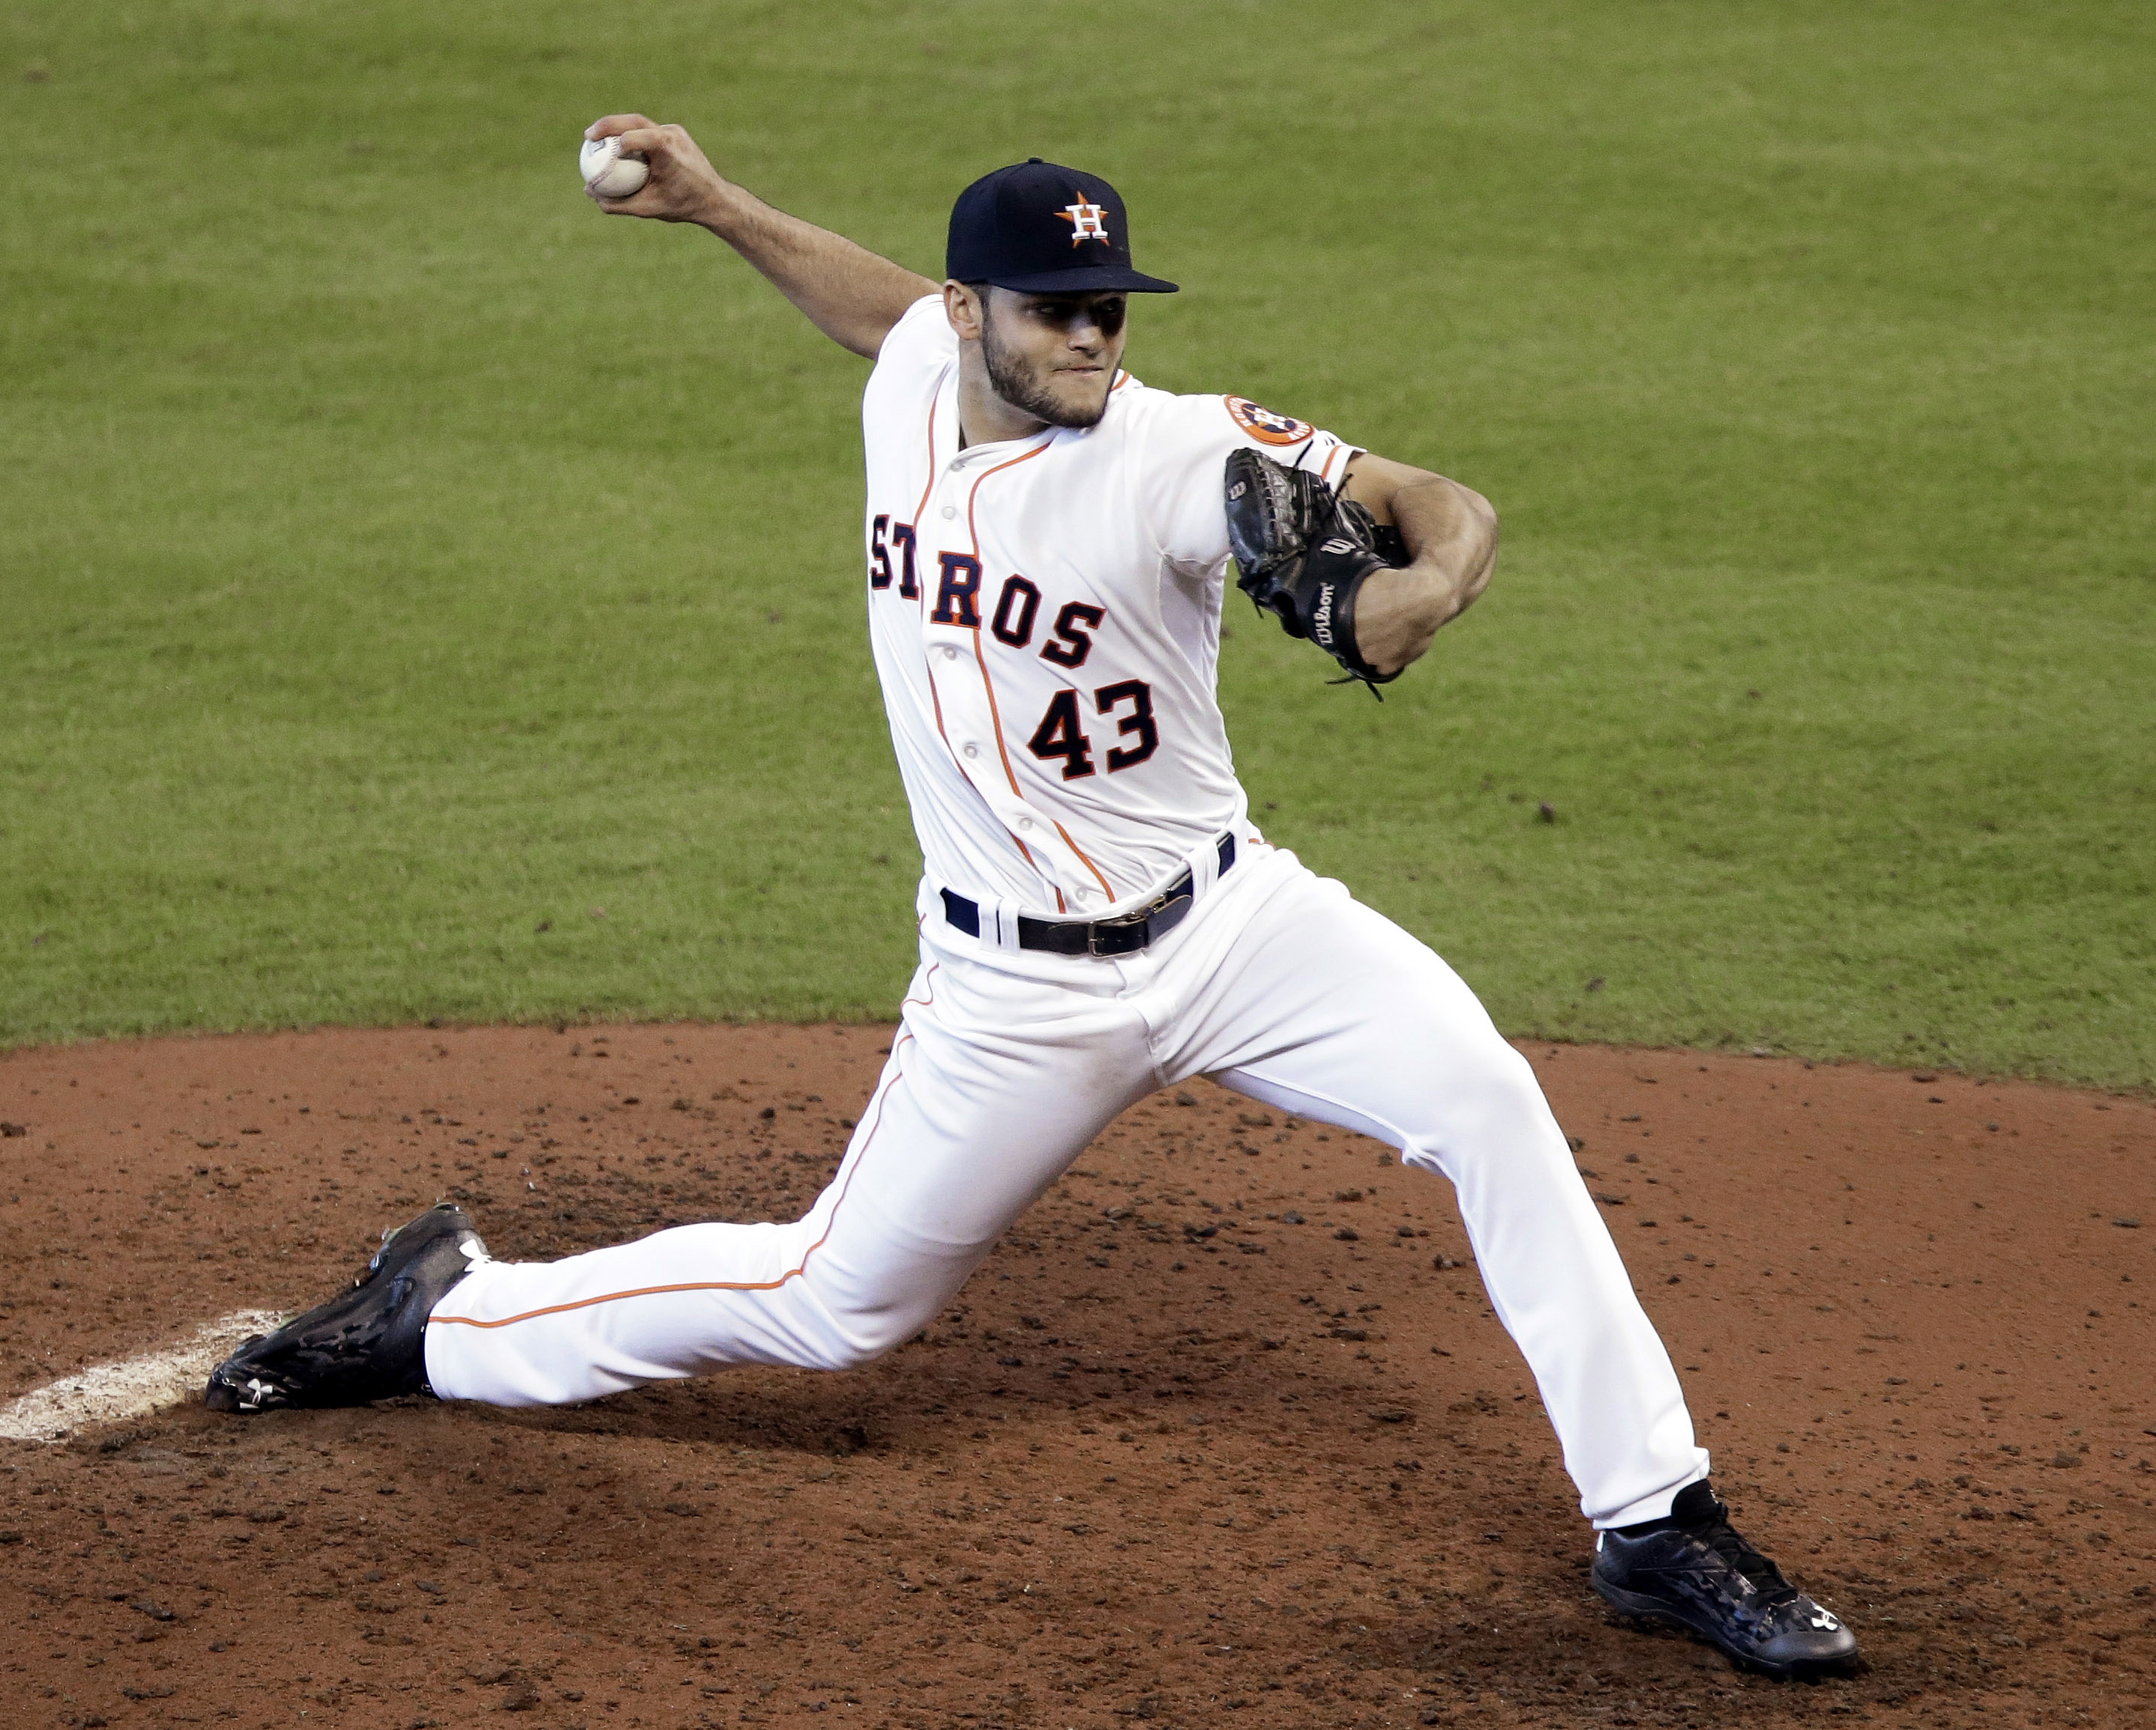 Houston Astros starting pitcher Lance McCullers delivers a pitch against the Seattle Mariners in the fifth inning of a baseball game Sunday, June 14, 2015, in Houston. McCullers kept the Mariners hitless for five innings before leaving the game. (AP Photo